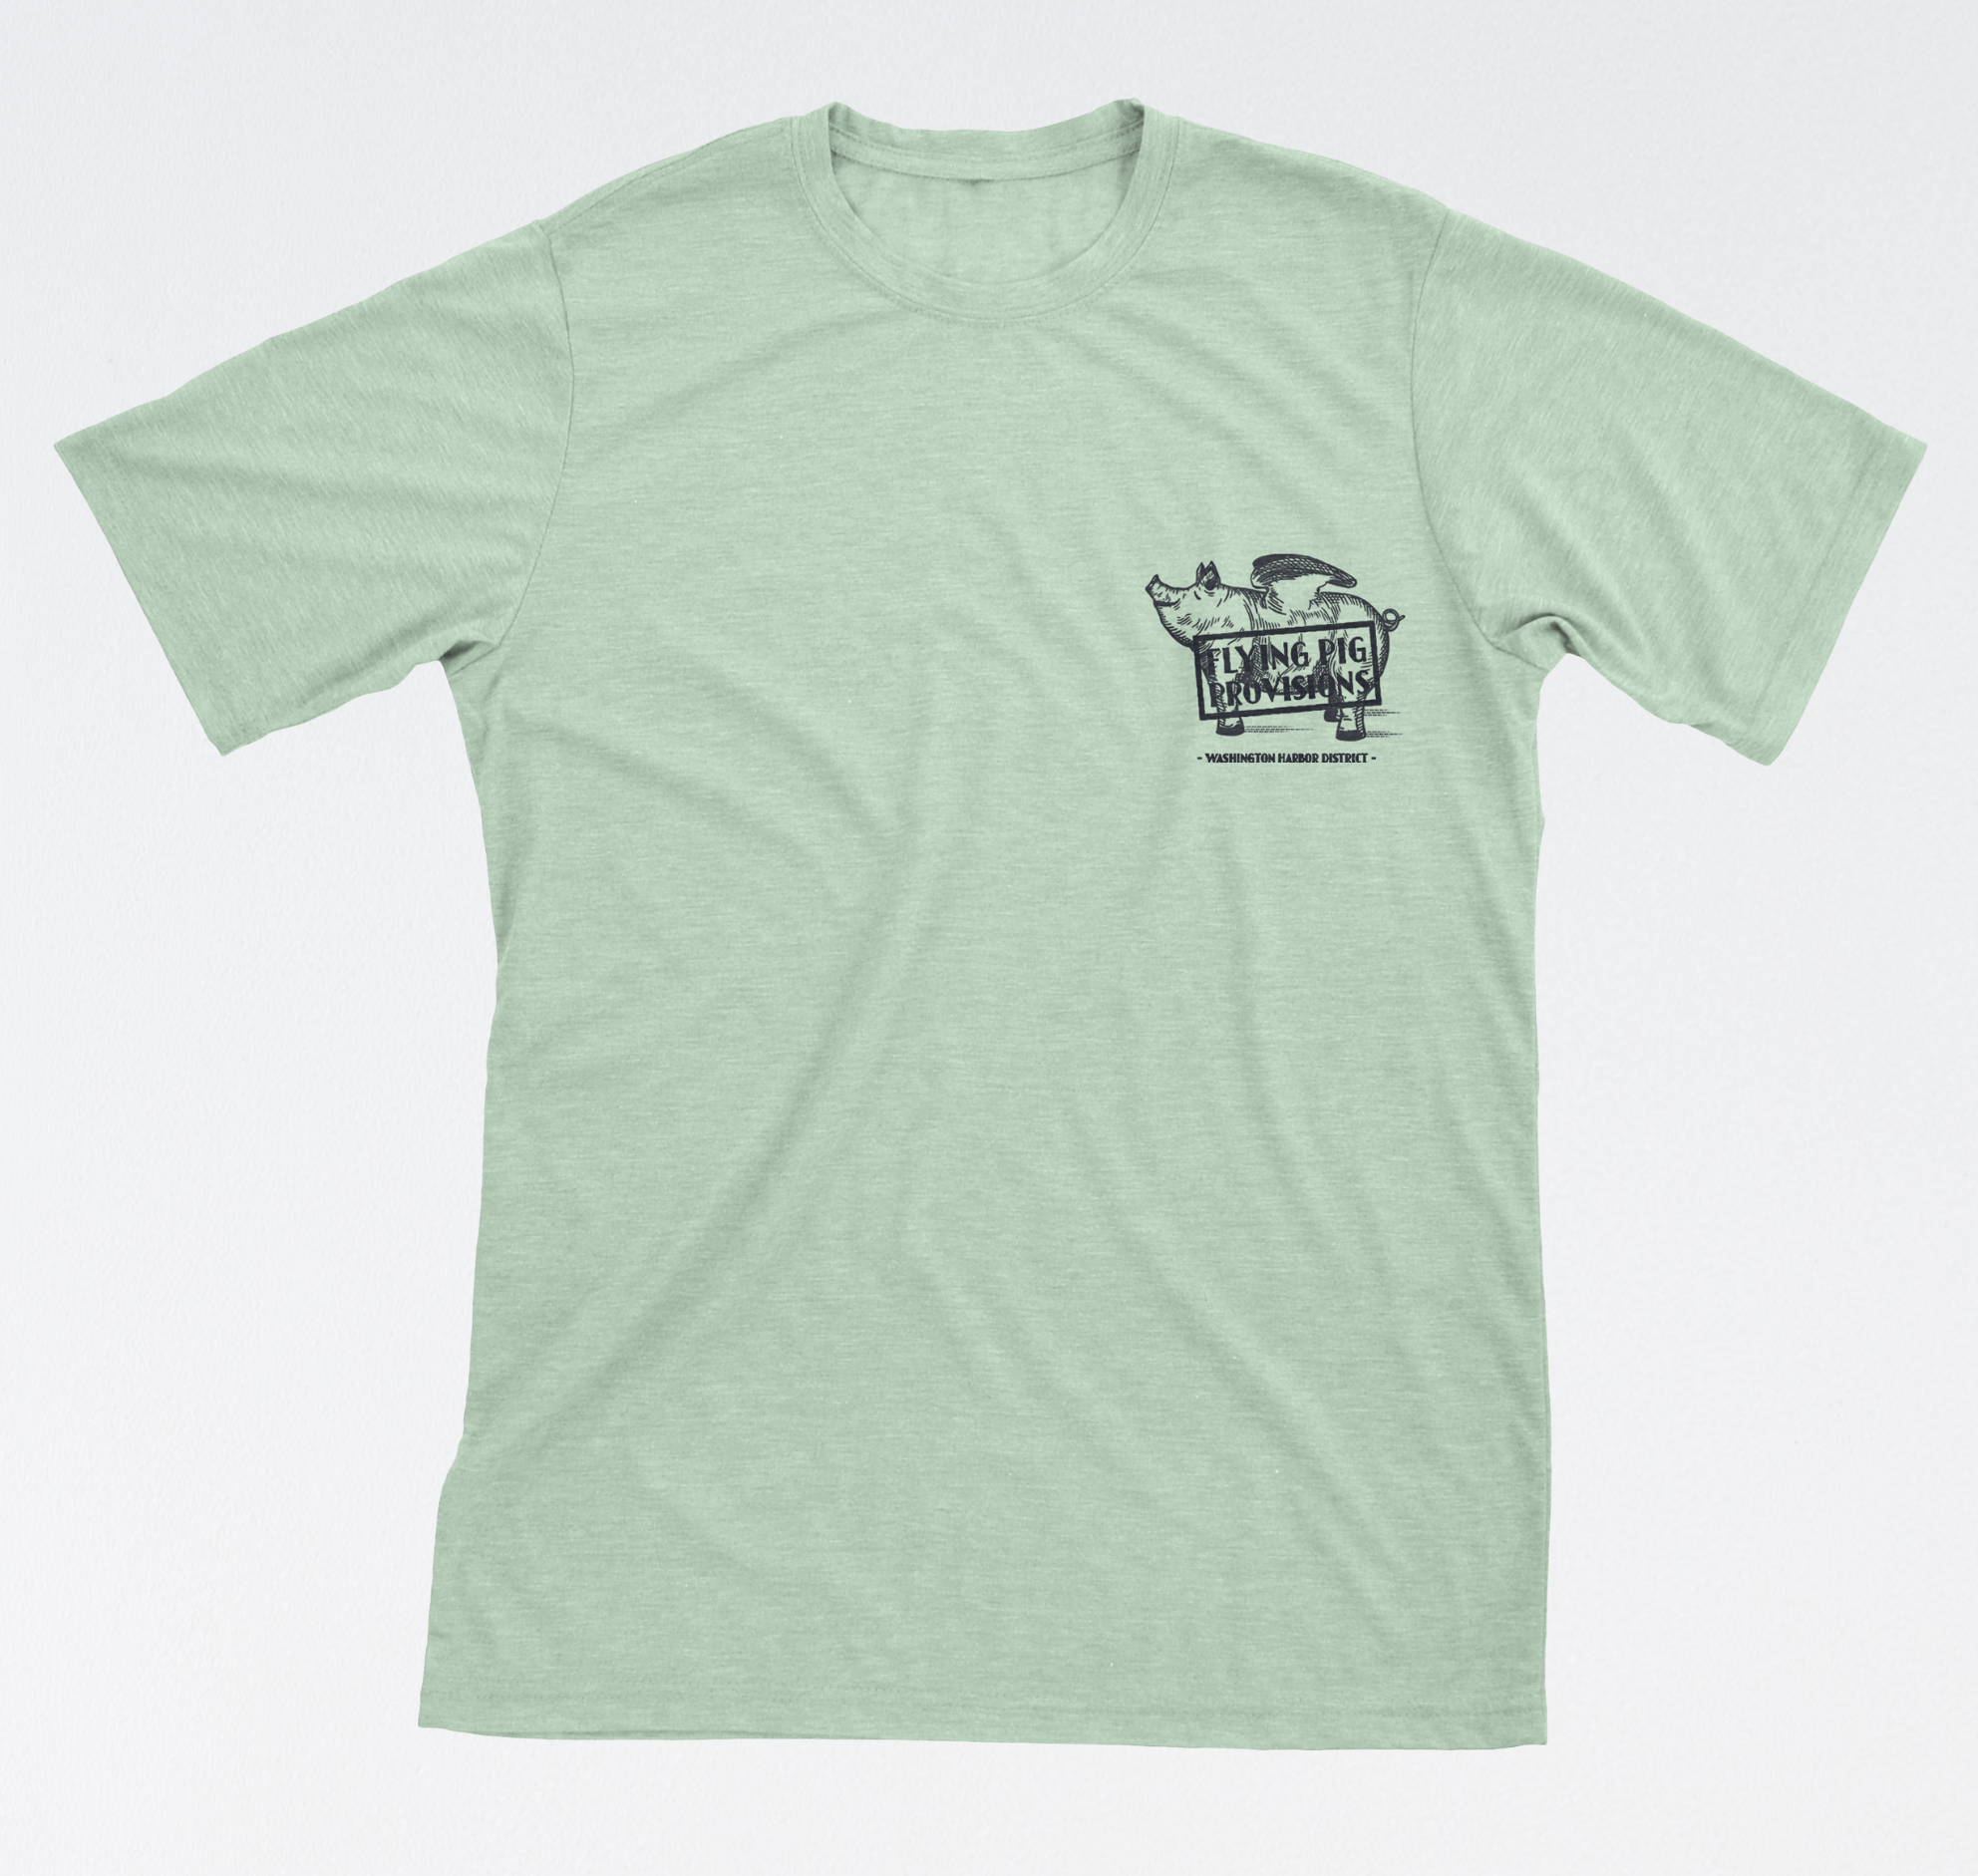 $19.95 | Flying Pig Provision Logo'd T-Shirt. Exclusively at Flying Pig Provisions (duh). Super comfy. Available Online Now!  Click here.